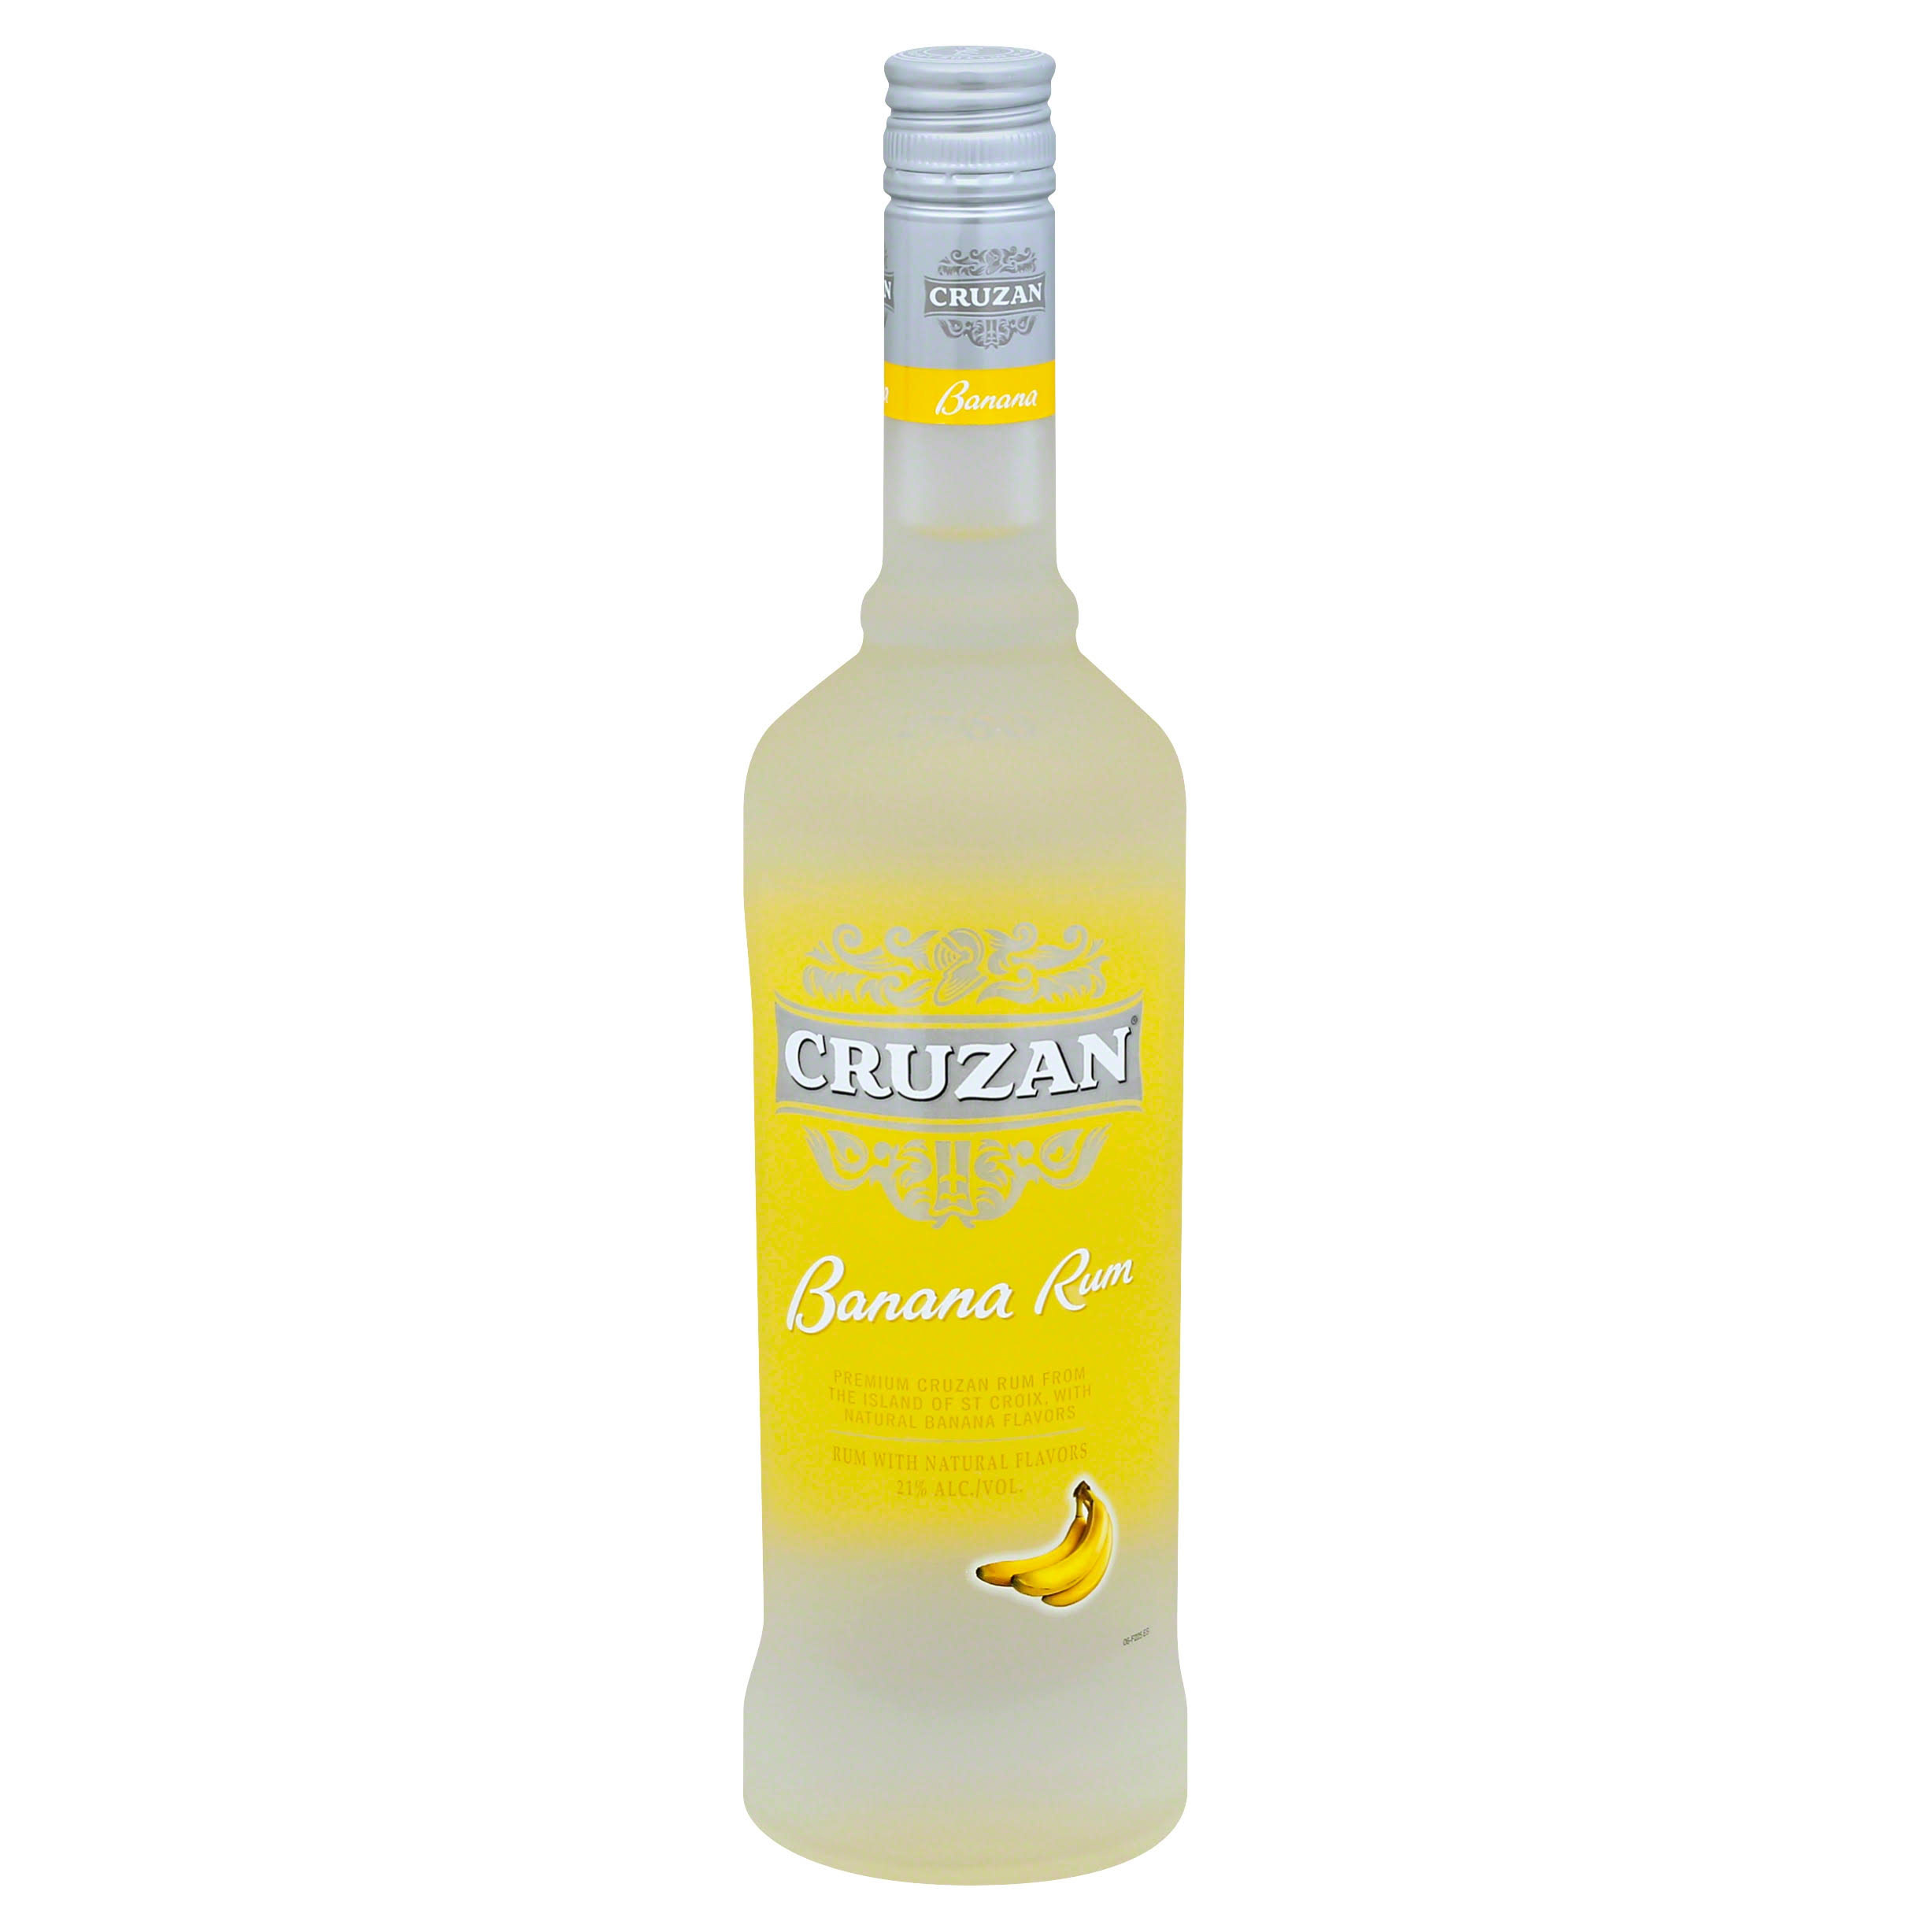 Cruzan Banana Rum - 750ml